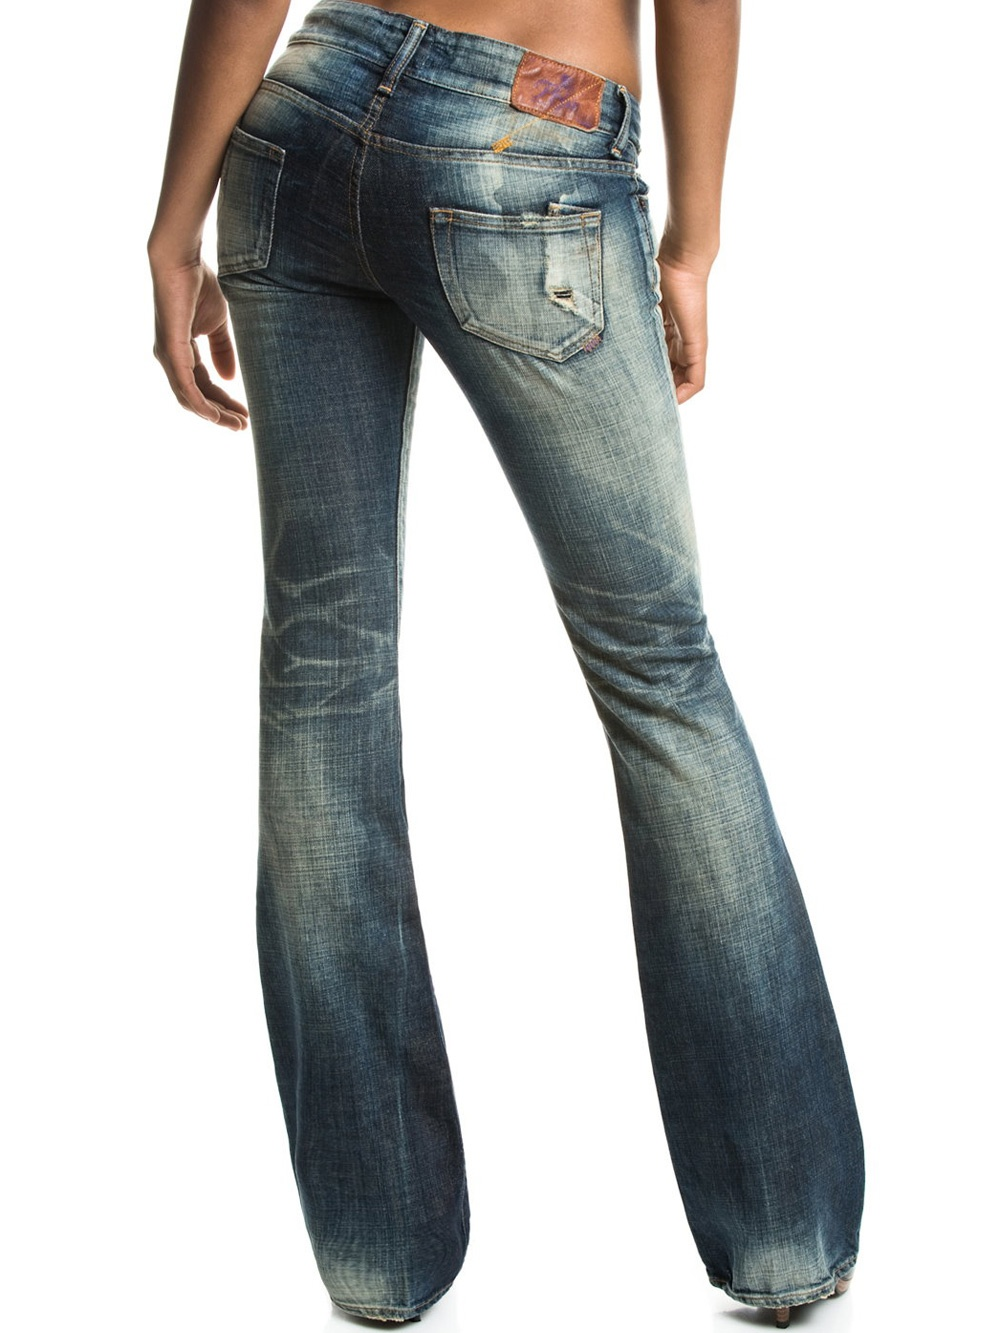 Bootcut Jeans Online Shopping